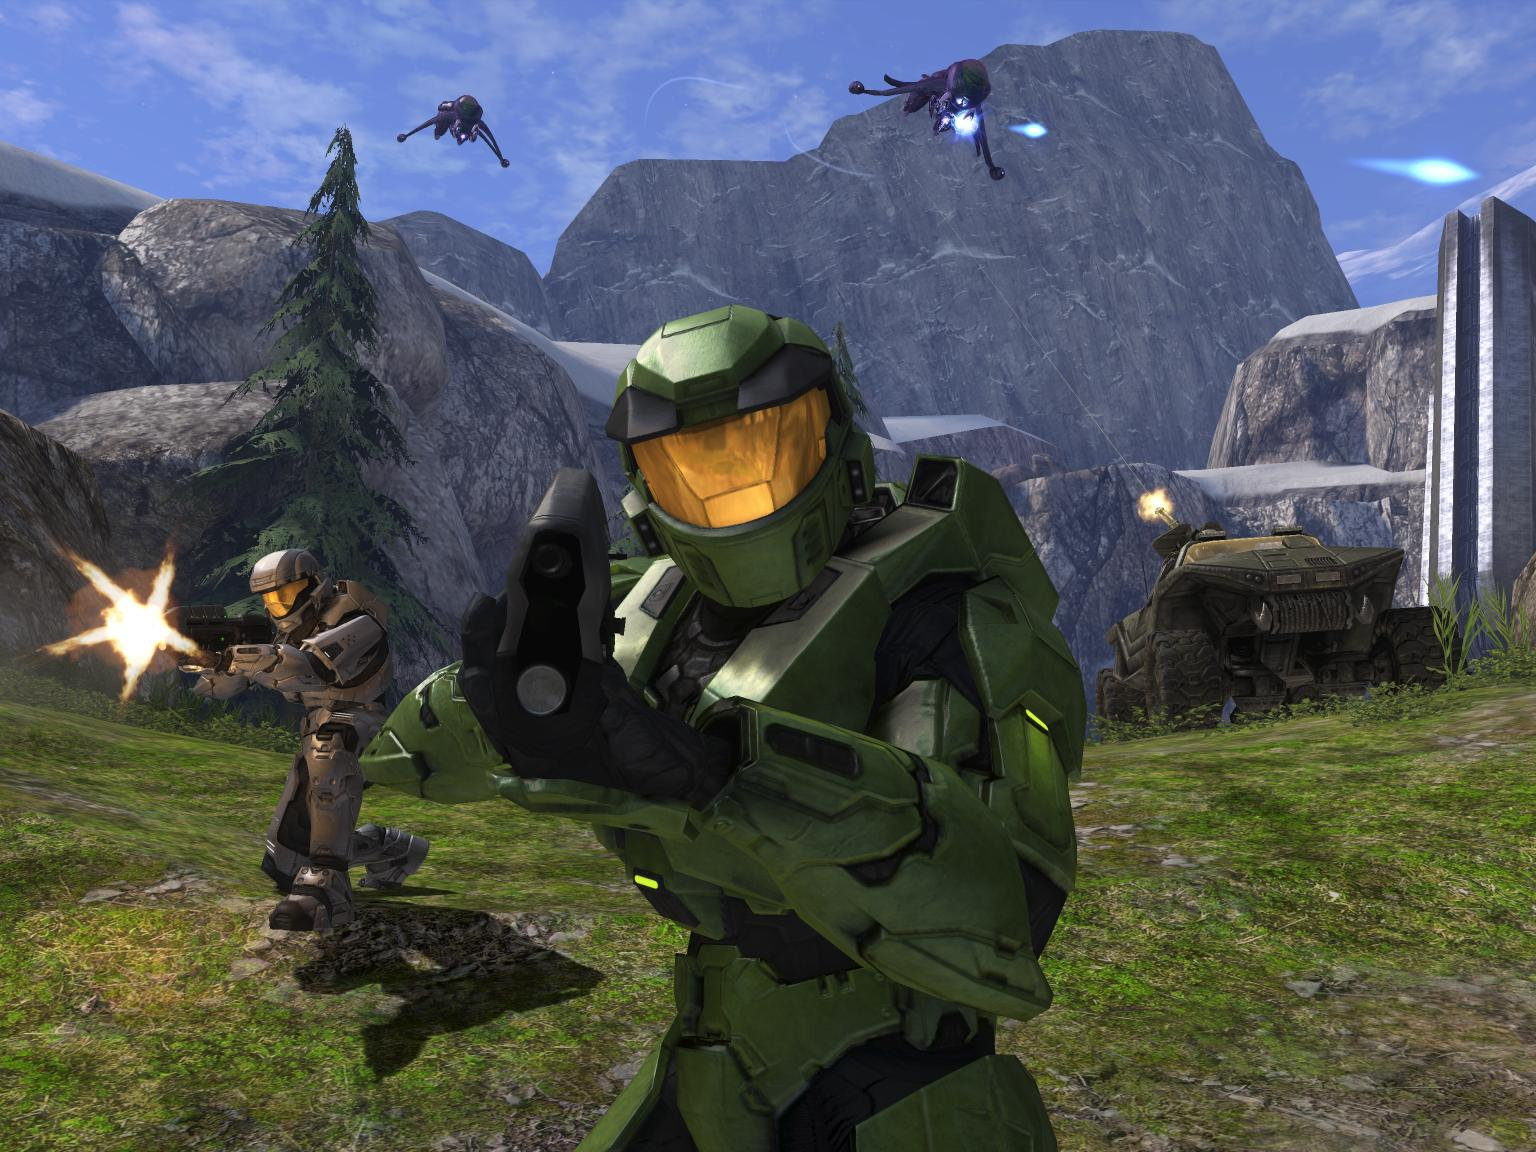 Halo Xbox Gameplay